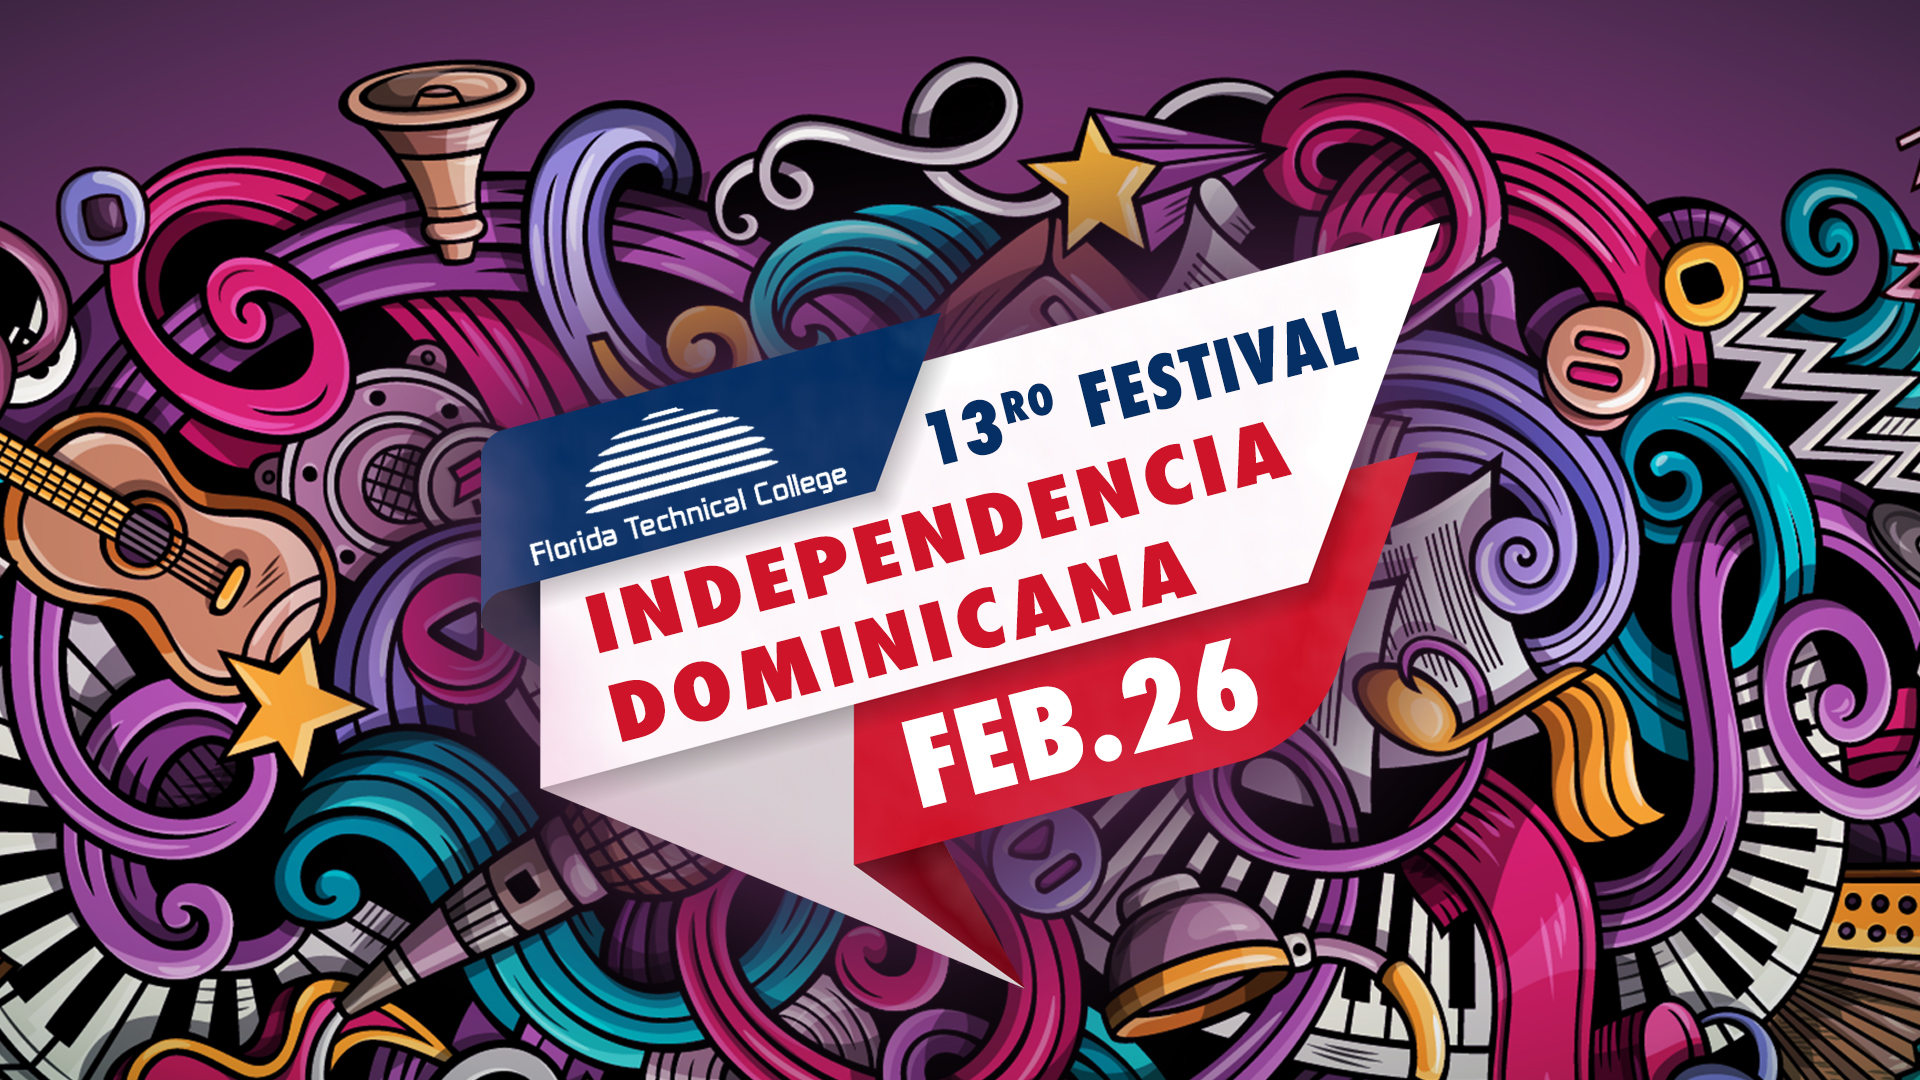 FTC Festival Independencia Dominicana Banner